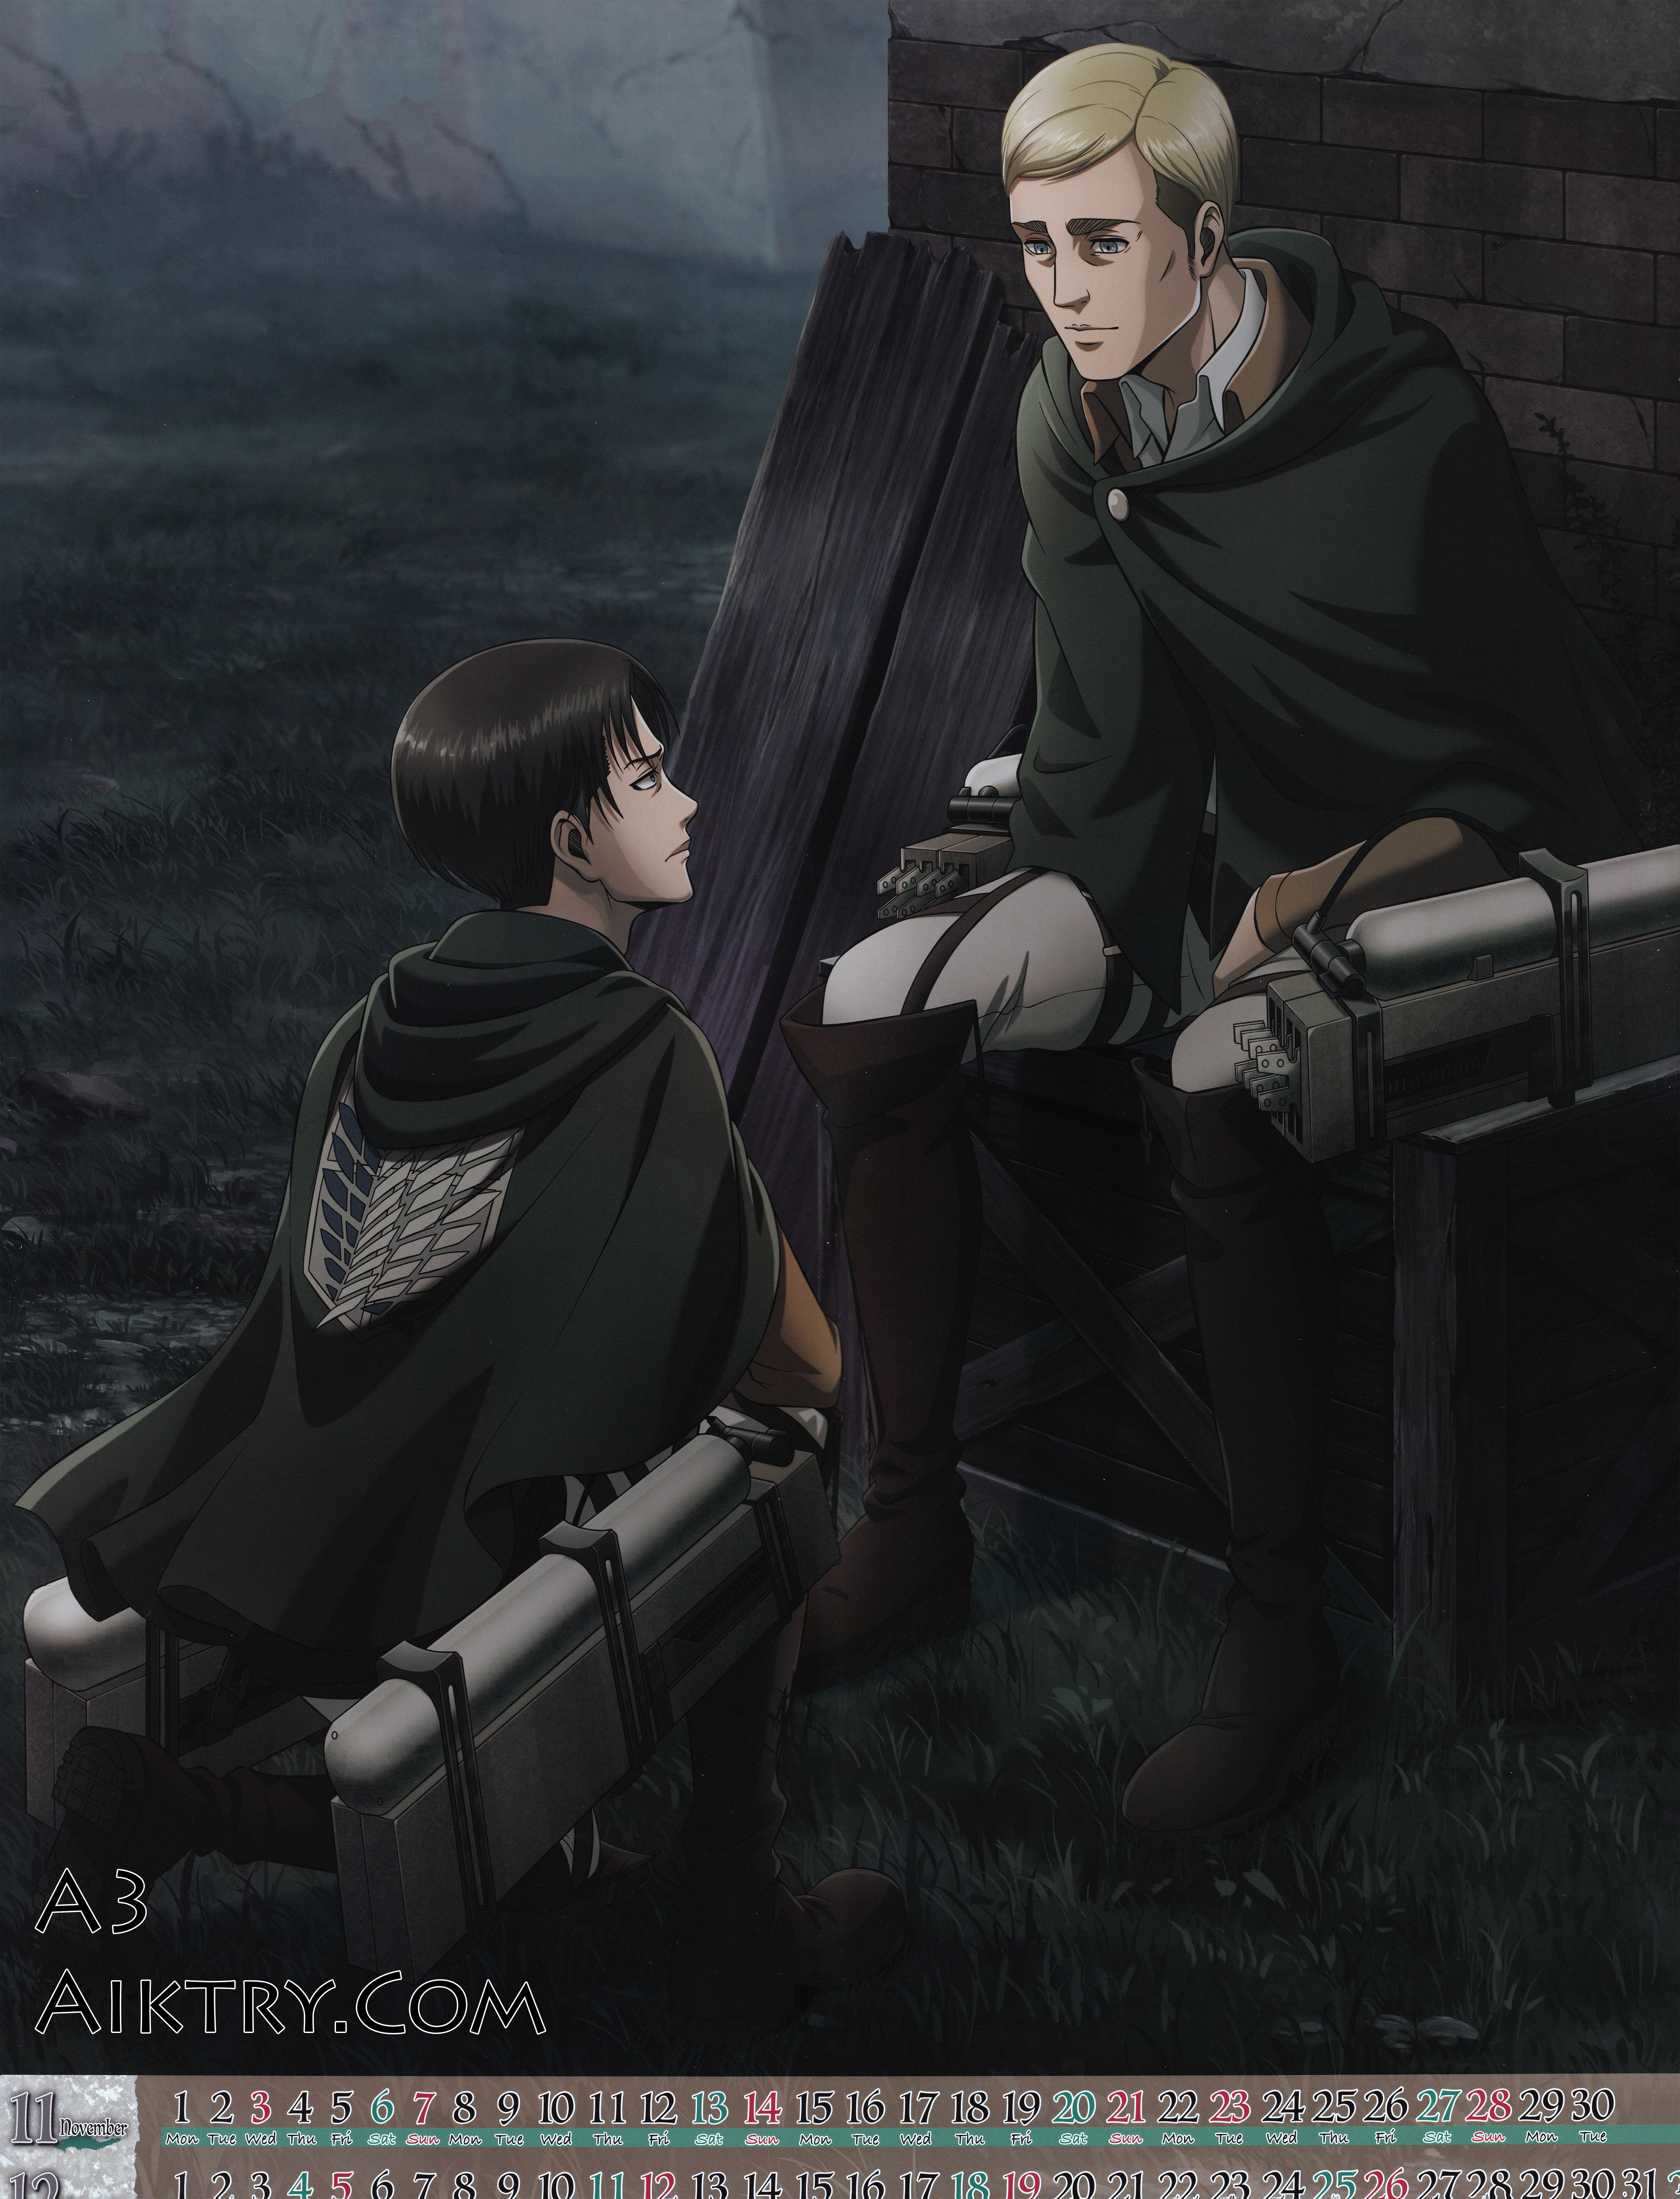 11-12 Levi Takes a Knee in Front of Erwin (Attack on Titan 2021 Calendar)